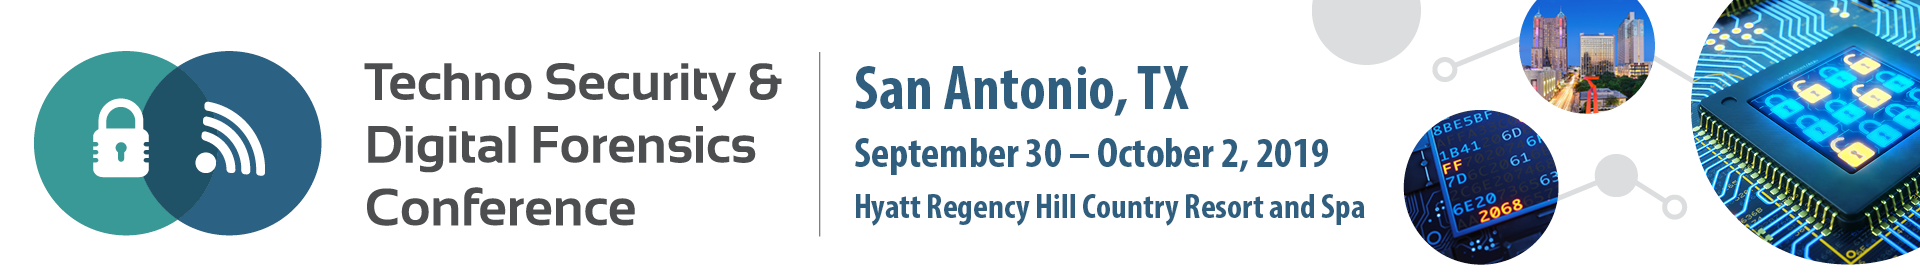 Texas Techno Security & Digital Forensics Conference Event Banner